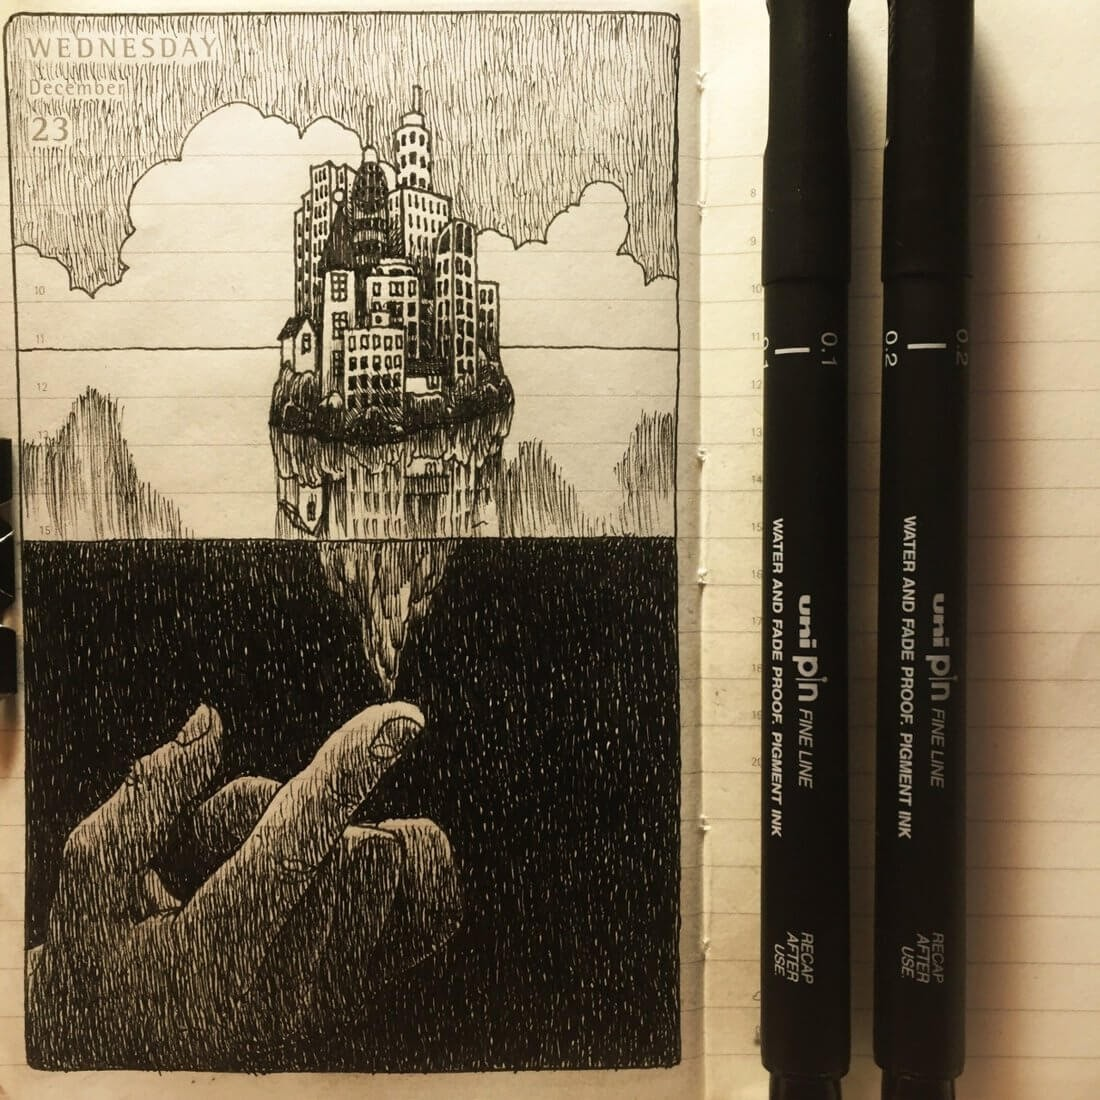 02-Tipping-the-Balance-Nina-Johansson-Moleskine-Diary-of-Surreal-Ink-Drawings-www-designstack-co